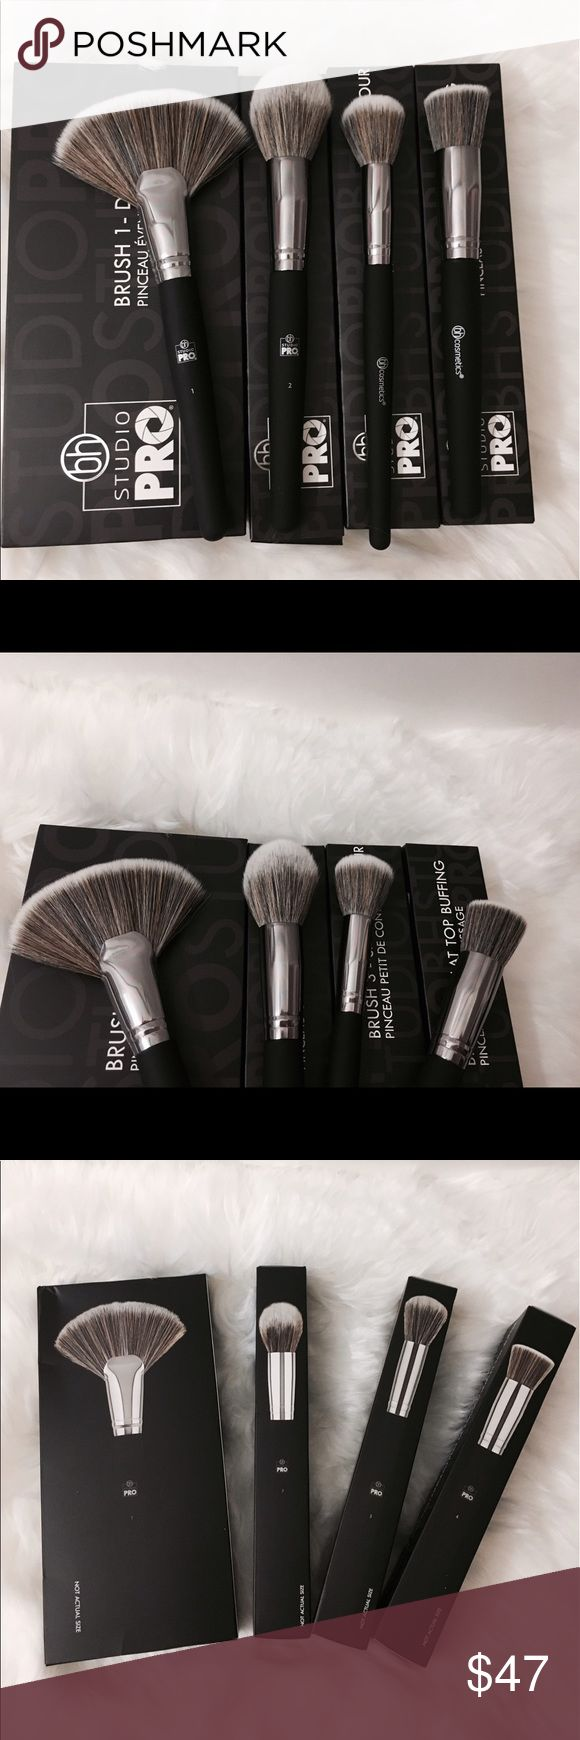 💯💋Studio pro Bh cosmetics pro brush set x4 nib Brand new Bh pro Brushes ! My dolls know I'm a certified MUA 10 + years ! Ex Mac , channel , Laura , Estée  MUA and I'm obsessed w/ Bh ! These are heaven ! I'm a top trusted 5✨rated makeup seller ! 400 + love notes 20K follwers 🎉✨💕  ! I  also send juicy gifts ! And package professionally ! Offer or bundle and I will do a private offer & top bundle discount more !listed u for Mac for viewing only Makeup